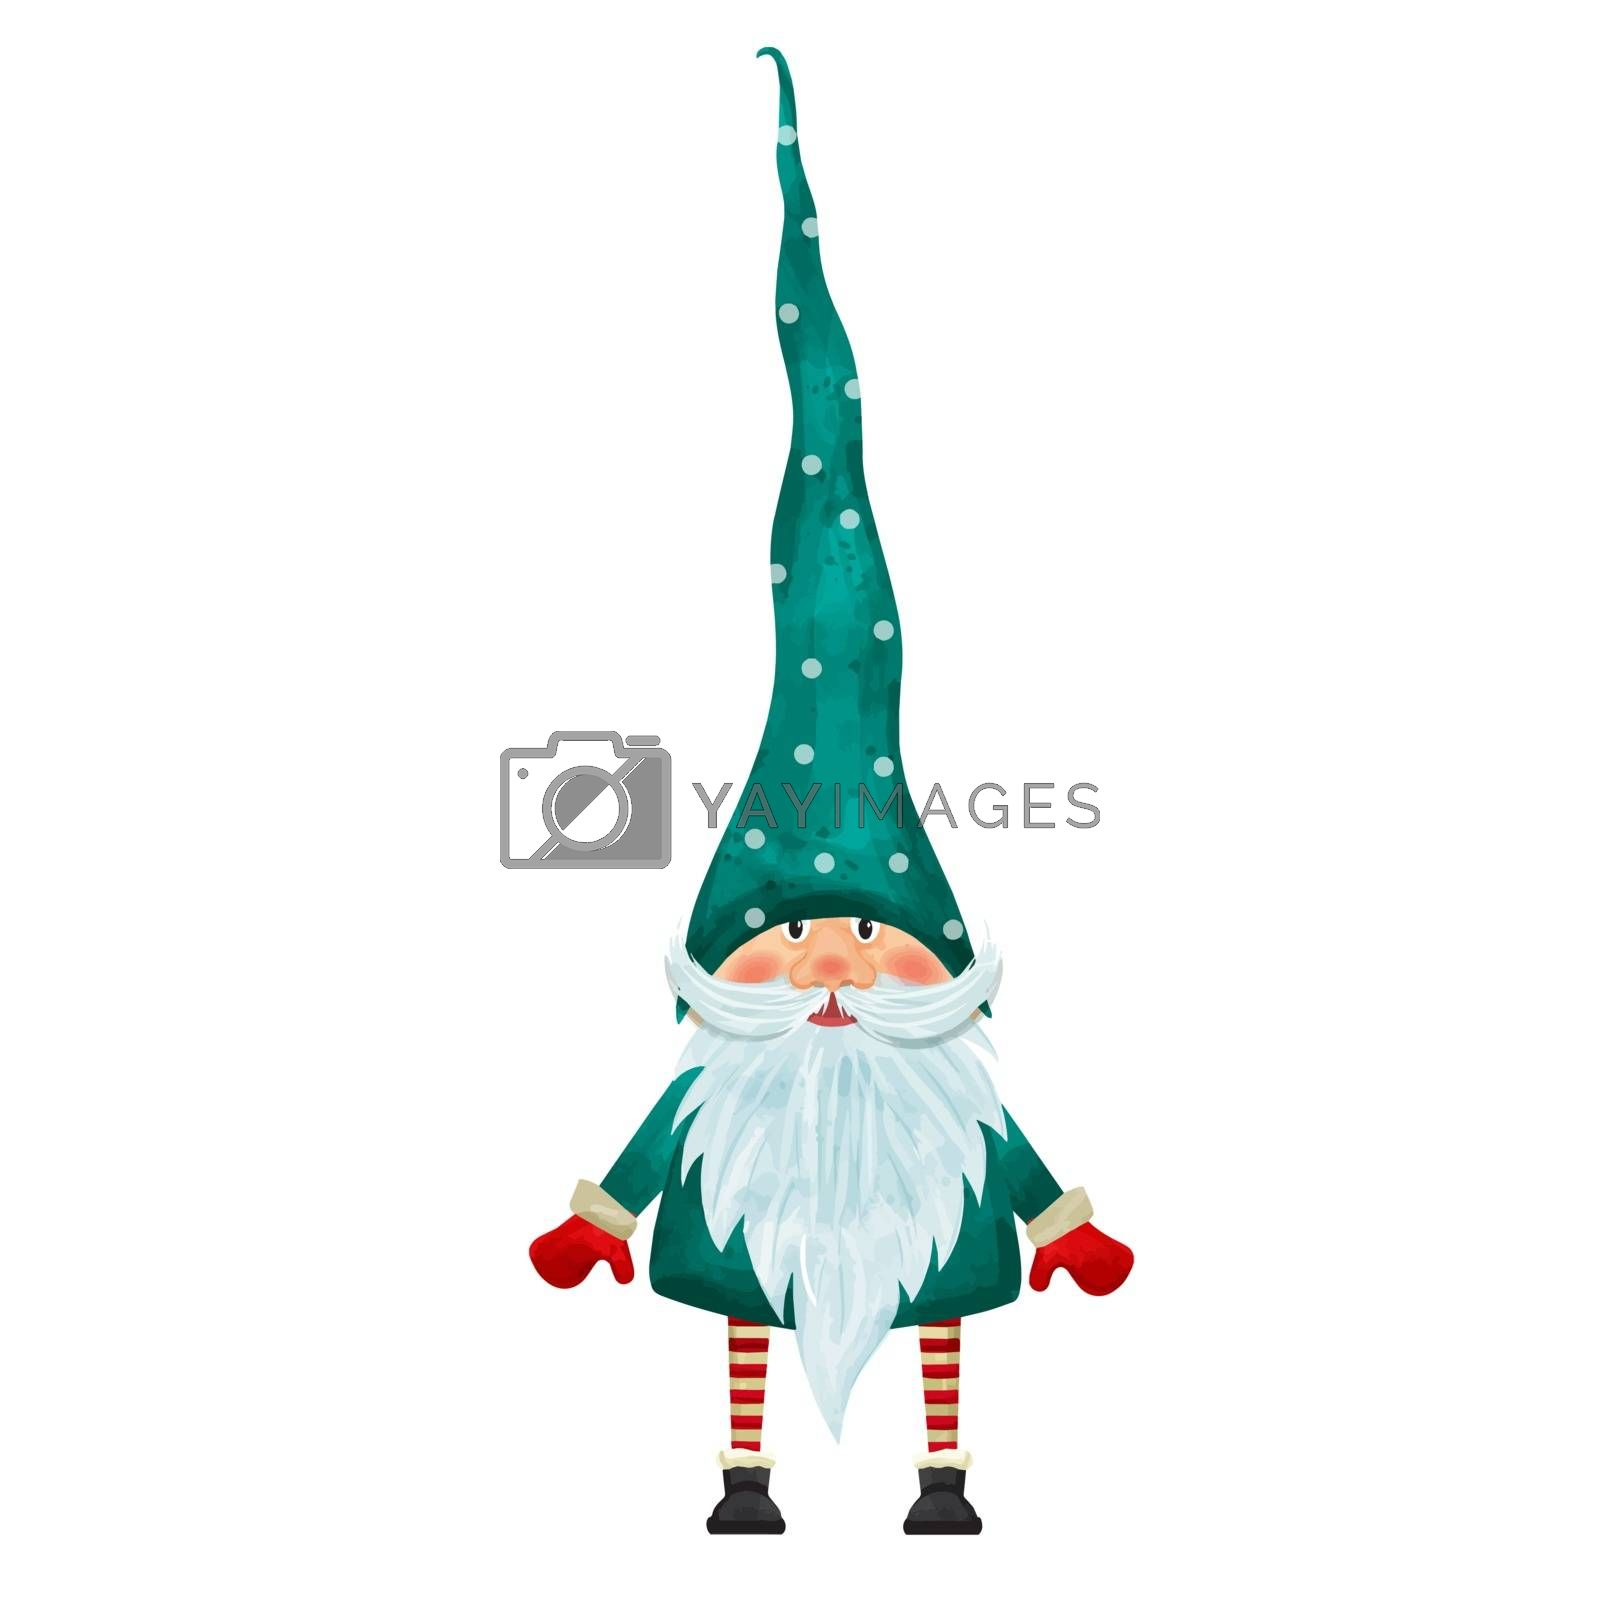 Watercolor Christmas gnome isolated on white background. Vector